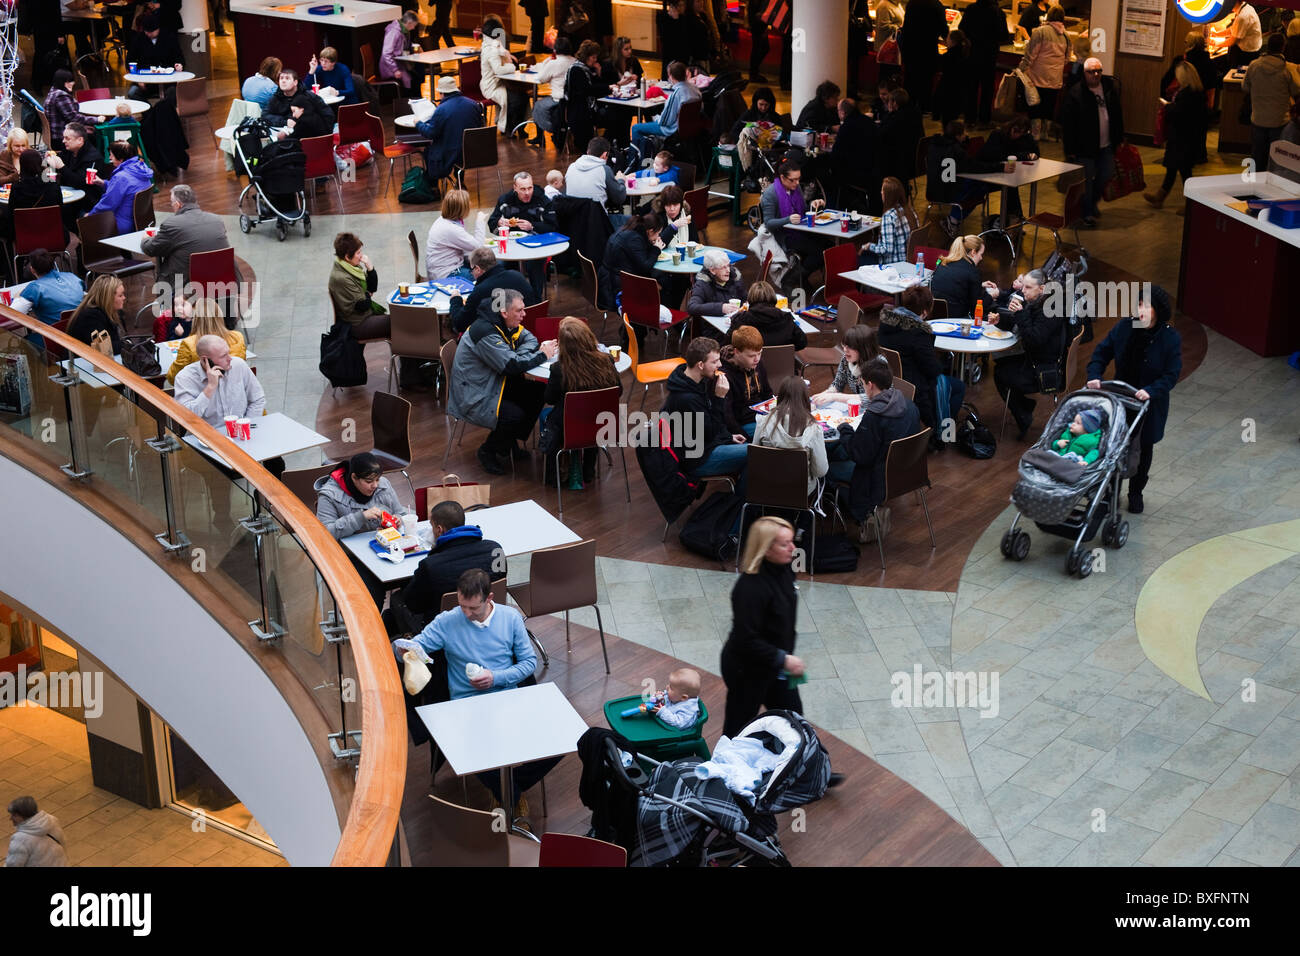 Fast food restaurants and seating area in a modern shopping mall, Argyll Street, Glasgow, Scotland Stock Photo